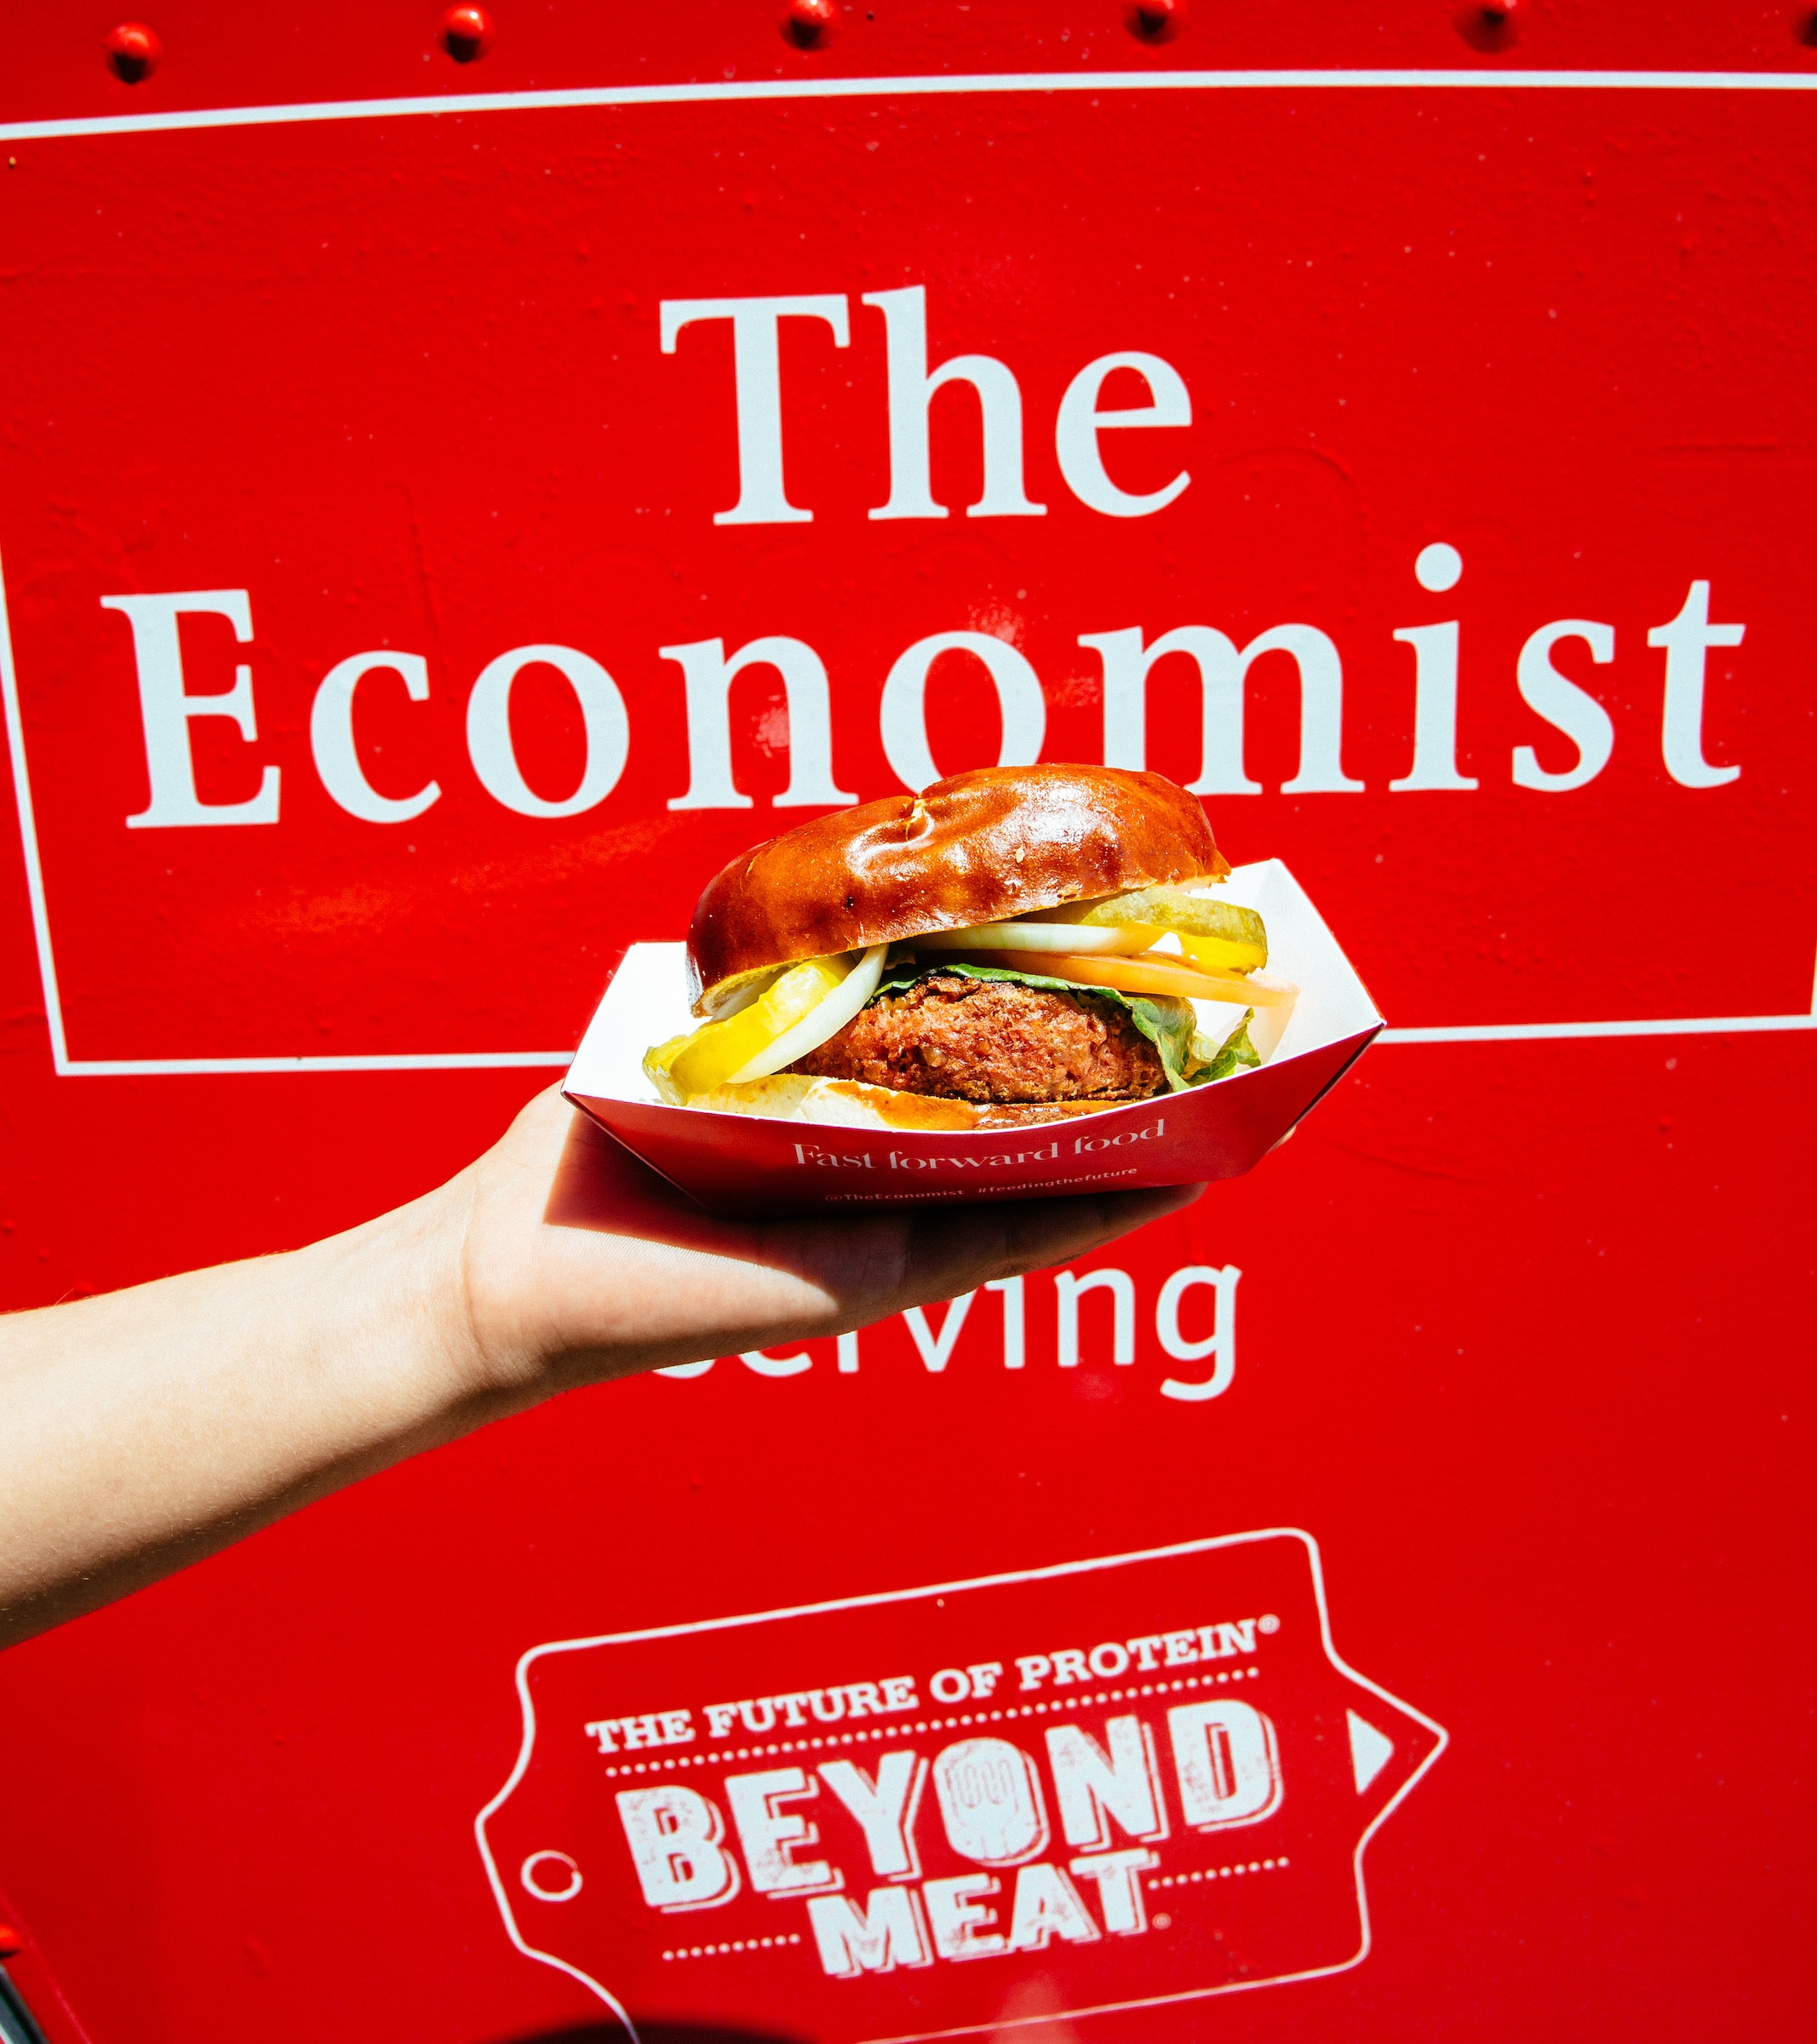 Example of experiential marketing from The Economist